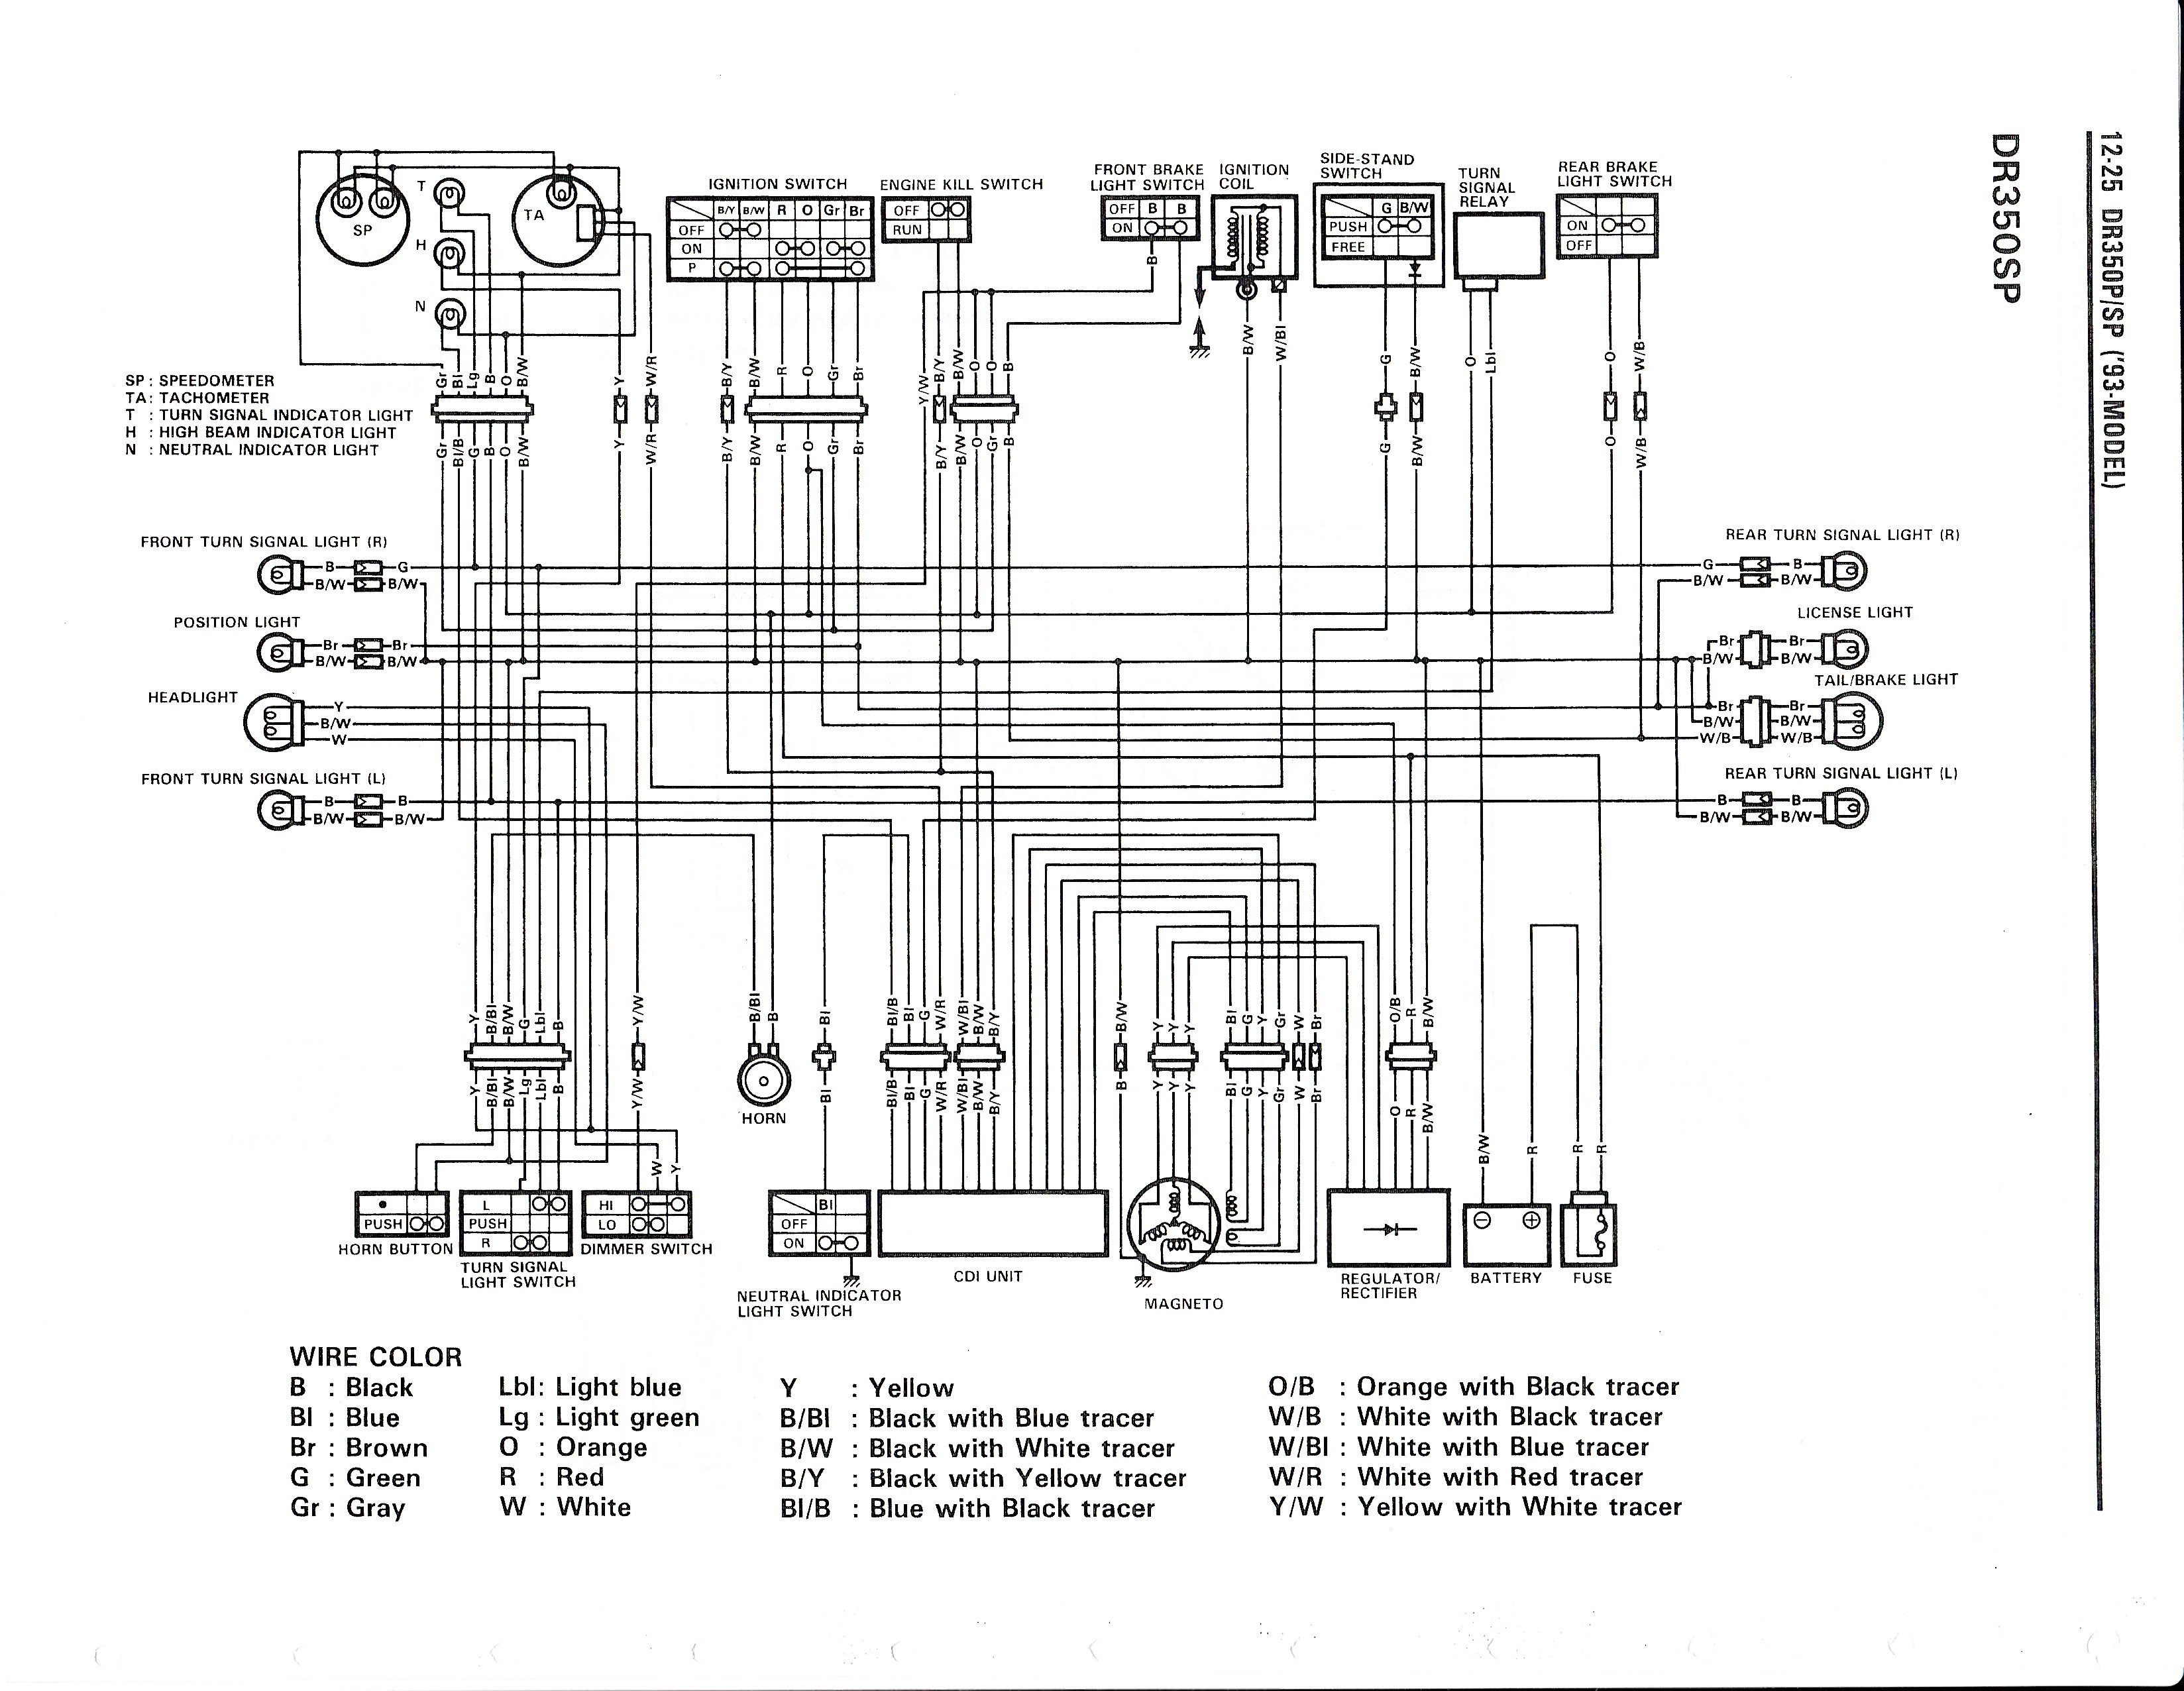 Wiring diagram for the DR350 S (1993 and later models)